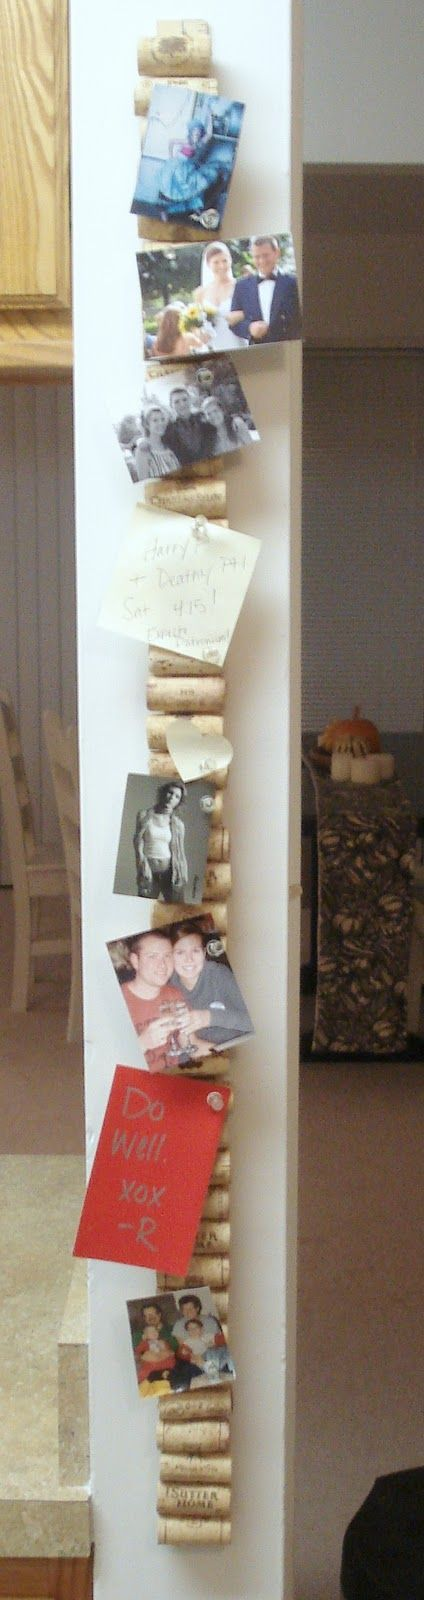 Put corks on a yard stick and you get a vertical cork board...great idea!  That must be why I've been saving my corks!: Wine Corks Boards, Christmas Cards, Yard Sticks, Idea, Vertical Corks, Pin Boards, Cork Boards, Holidays Cards, Xmas Cards